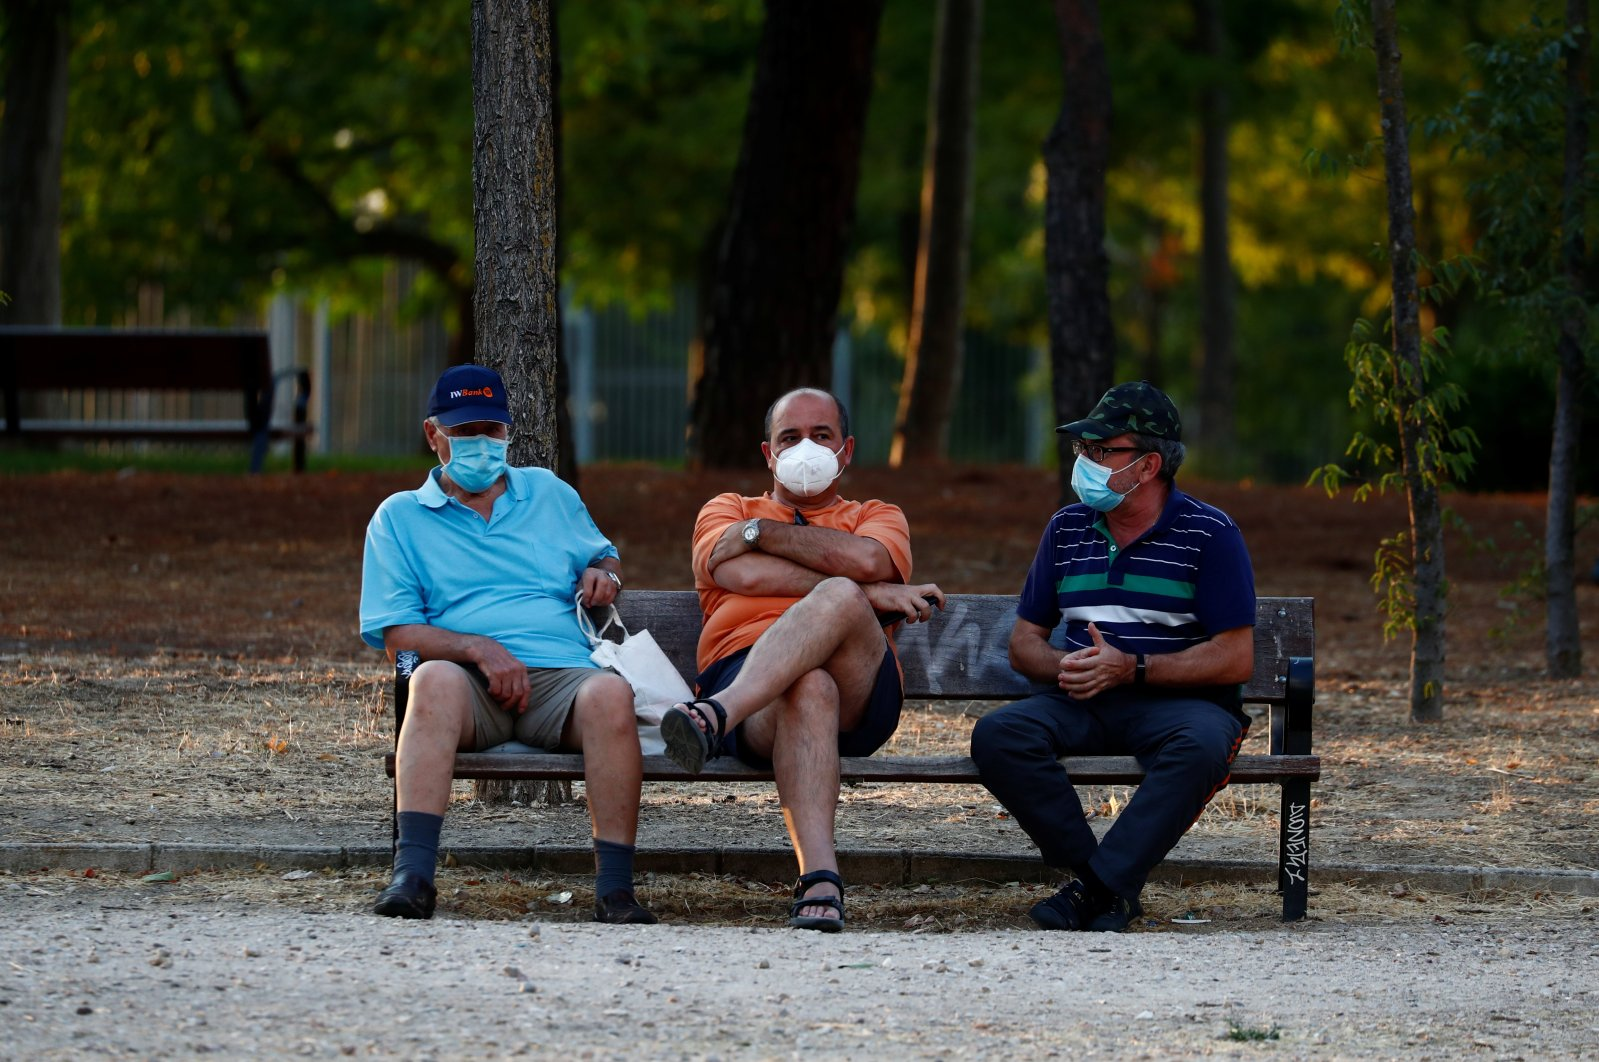 People wearing protective face masks sit at the Las Cruces park amid the coronavirus outbreak in Madrid, Spain, July 28, 2020. (Reuters Photo)